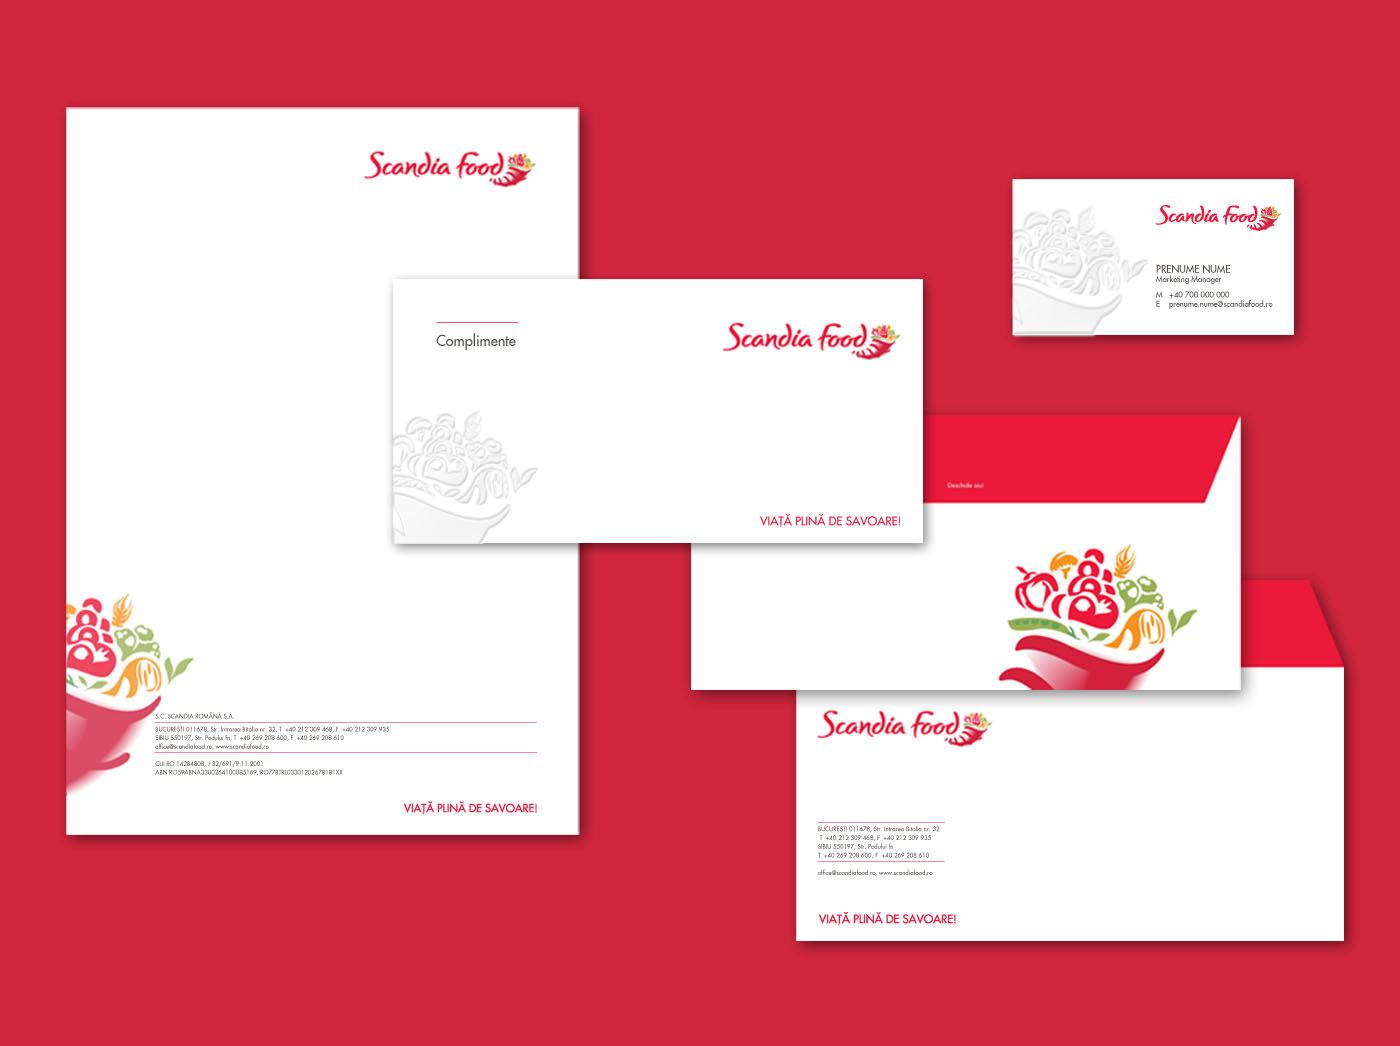 scandia food stationary design inoveo